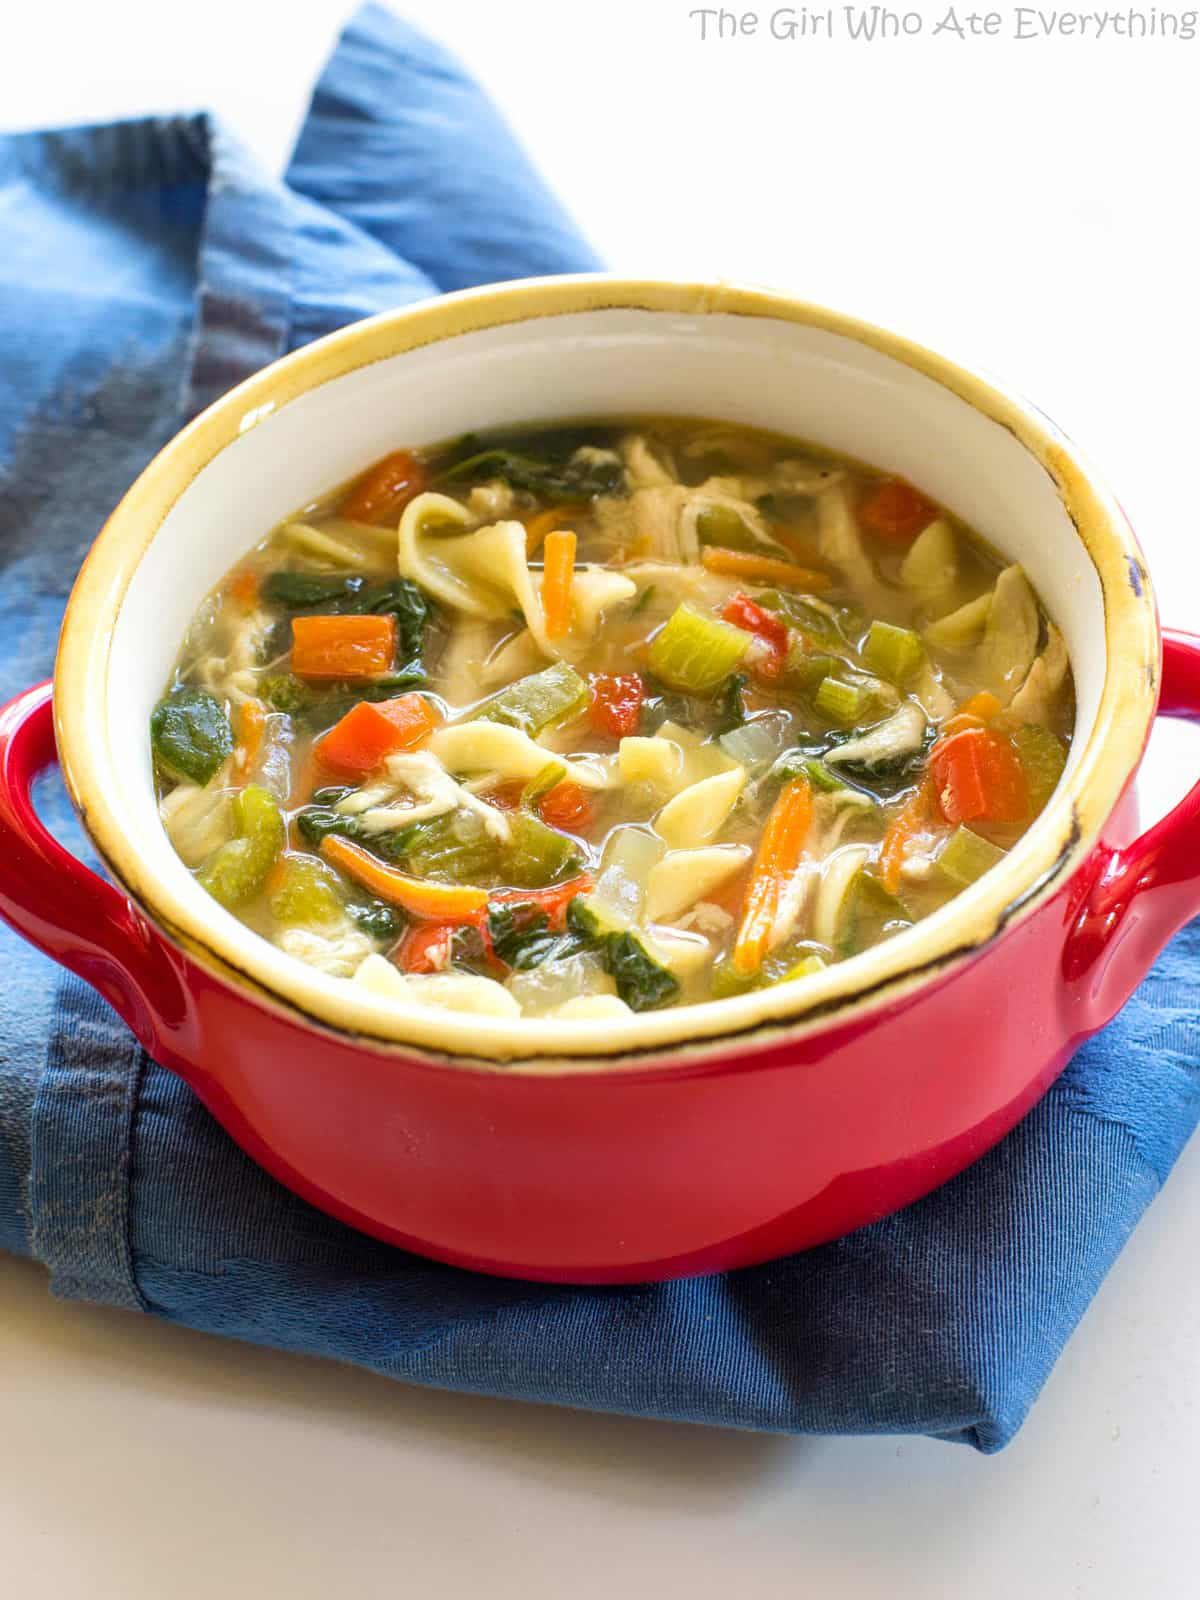 Is Chicken Soup Healthy  Healthy Ve able Chicken Soup The Girl Who Ate Everything